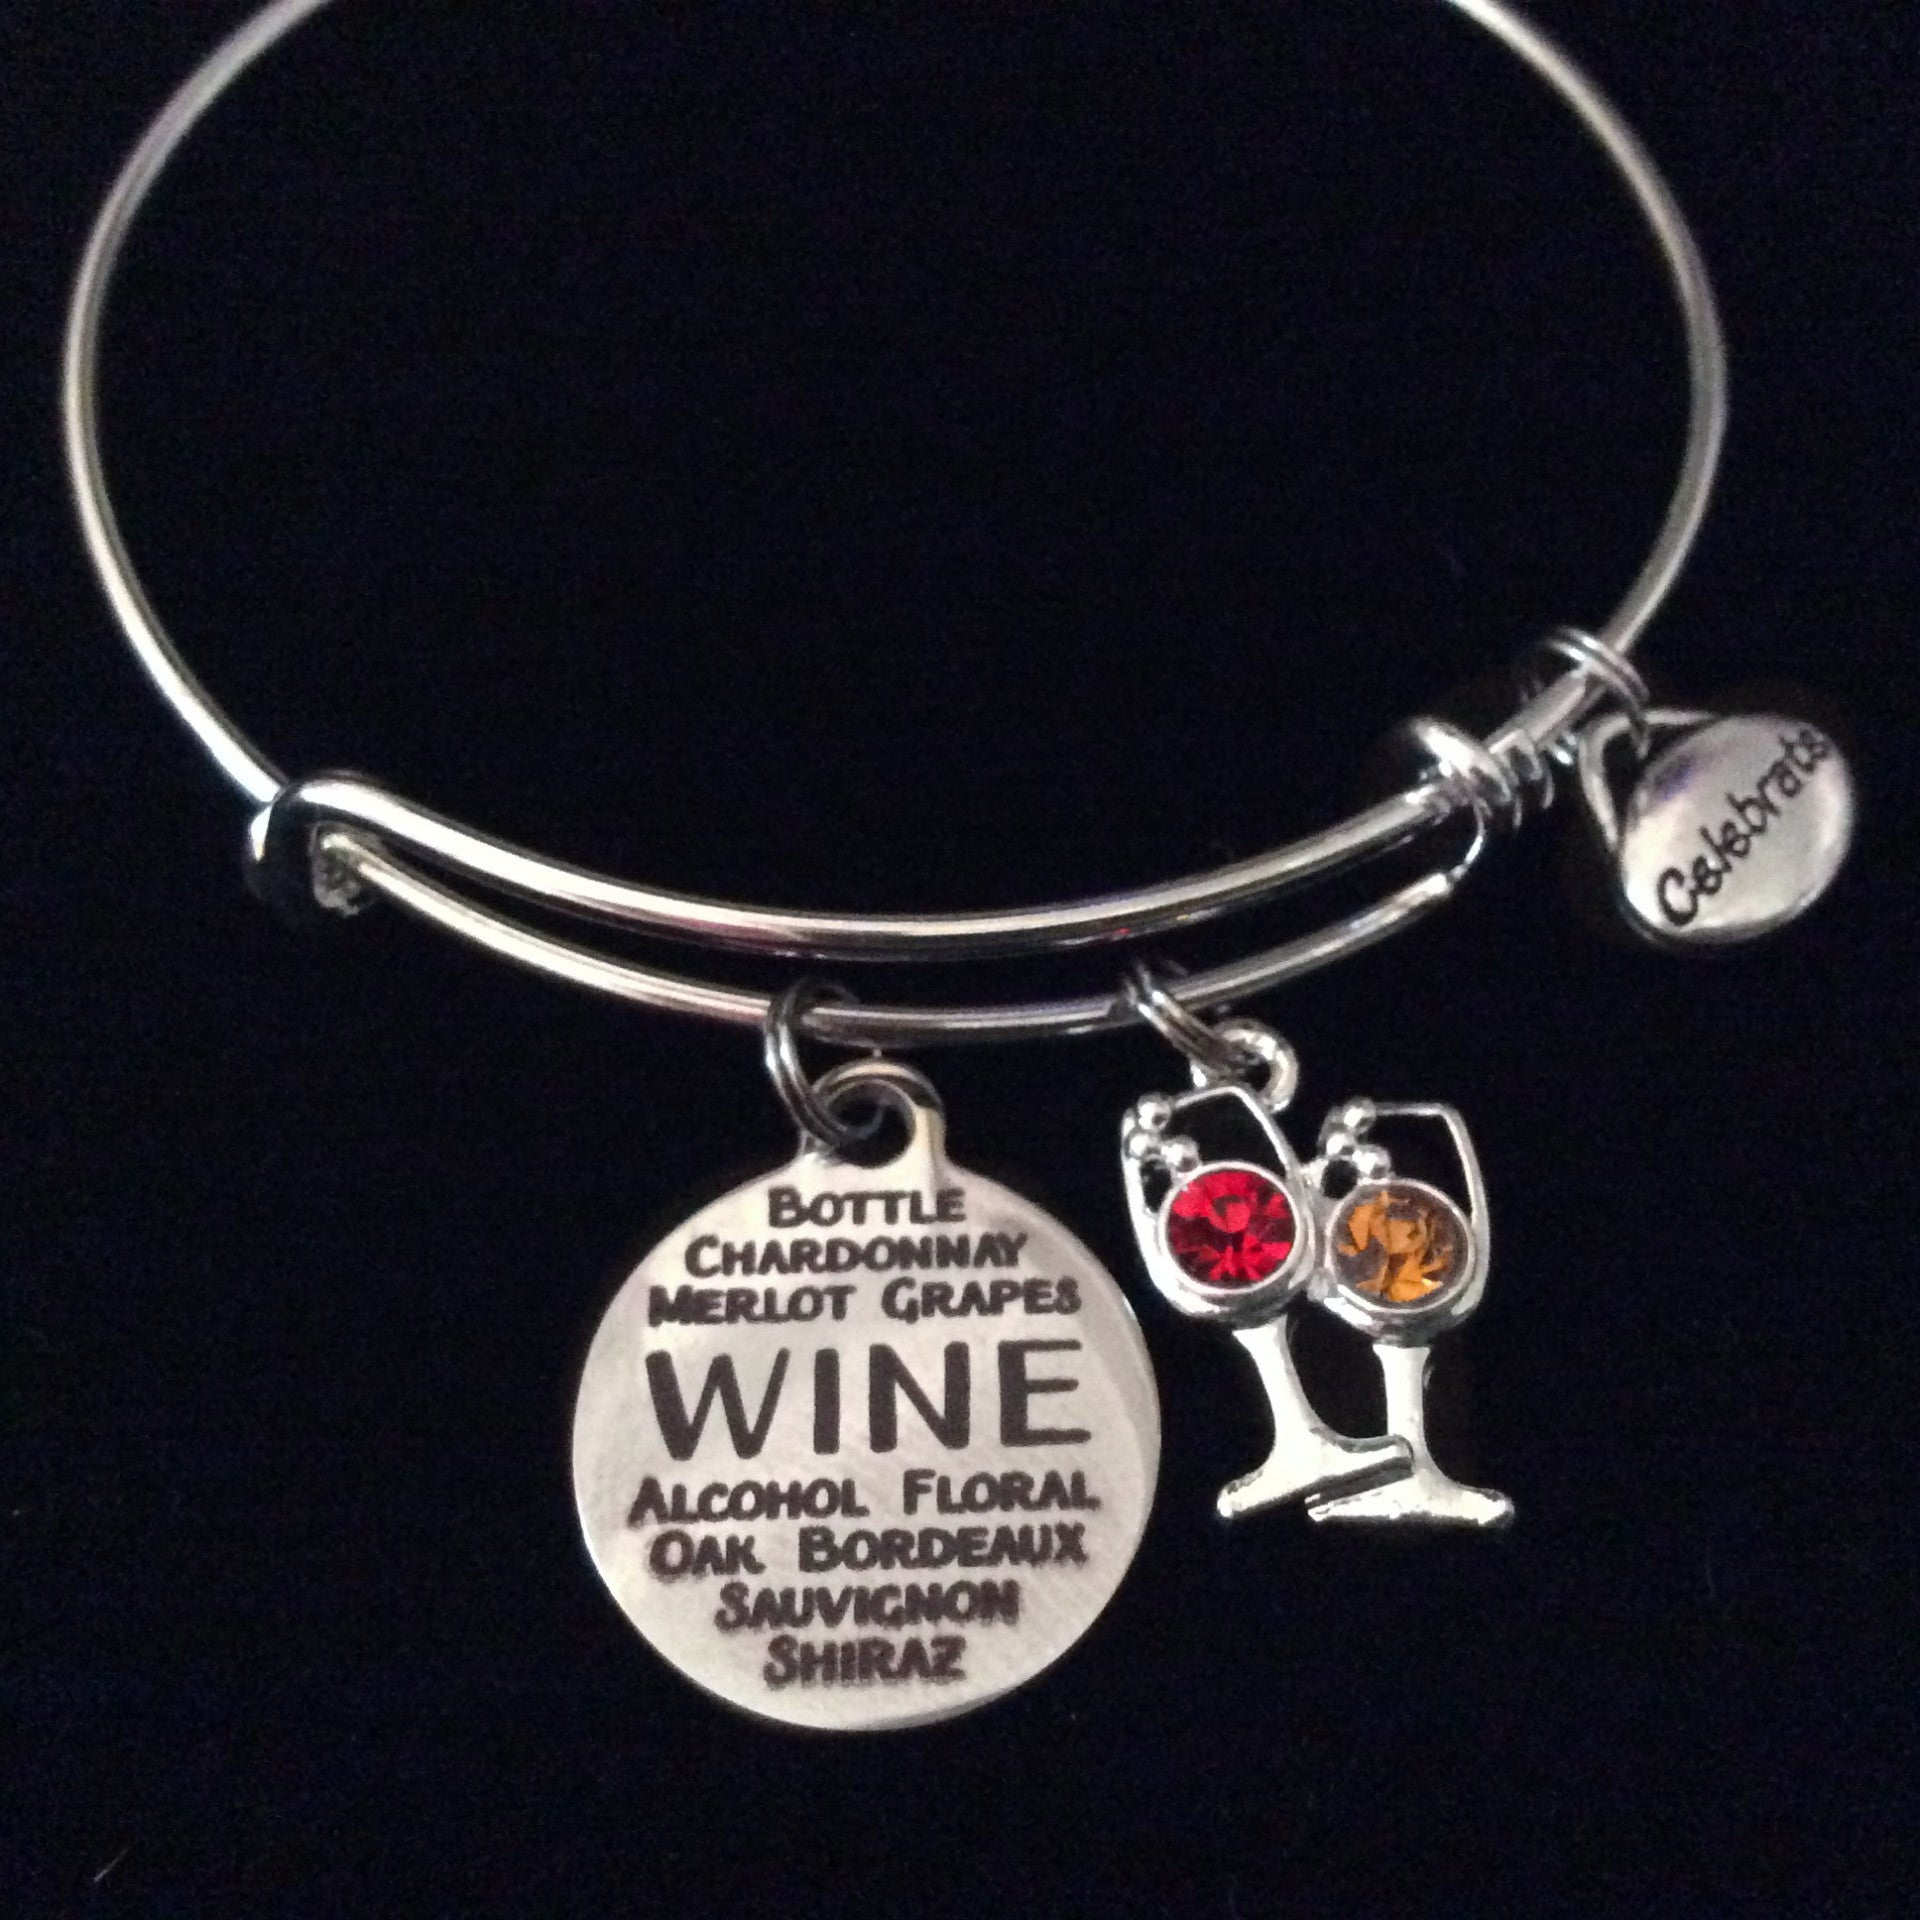 27272790ba4a7 White and Red Wine Glass Silver Expandable Charm Bracelet Adjustable Wire  Bangle Bracelet Wine Lovers Gift